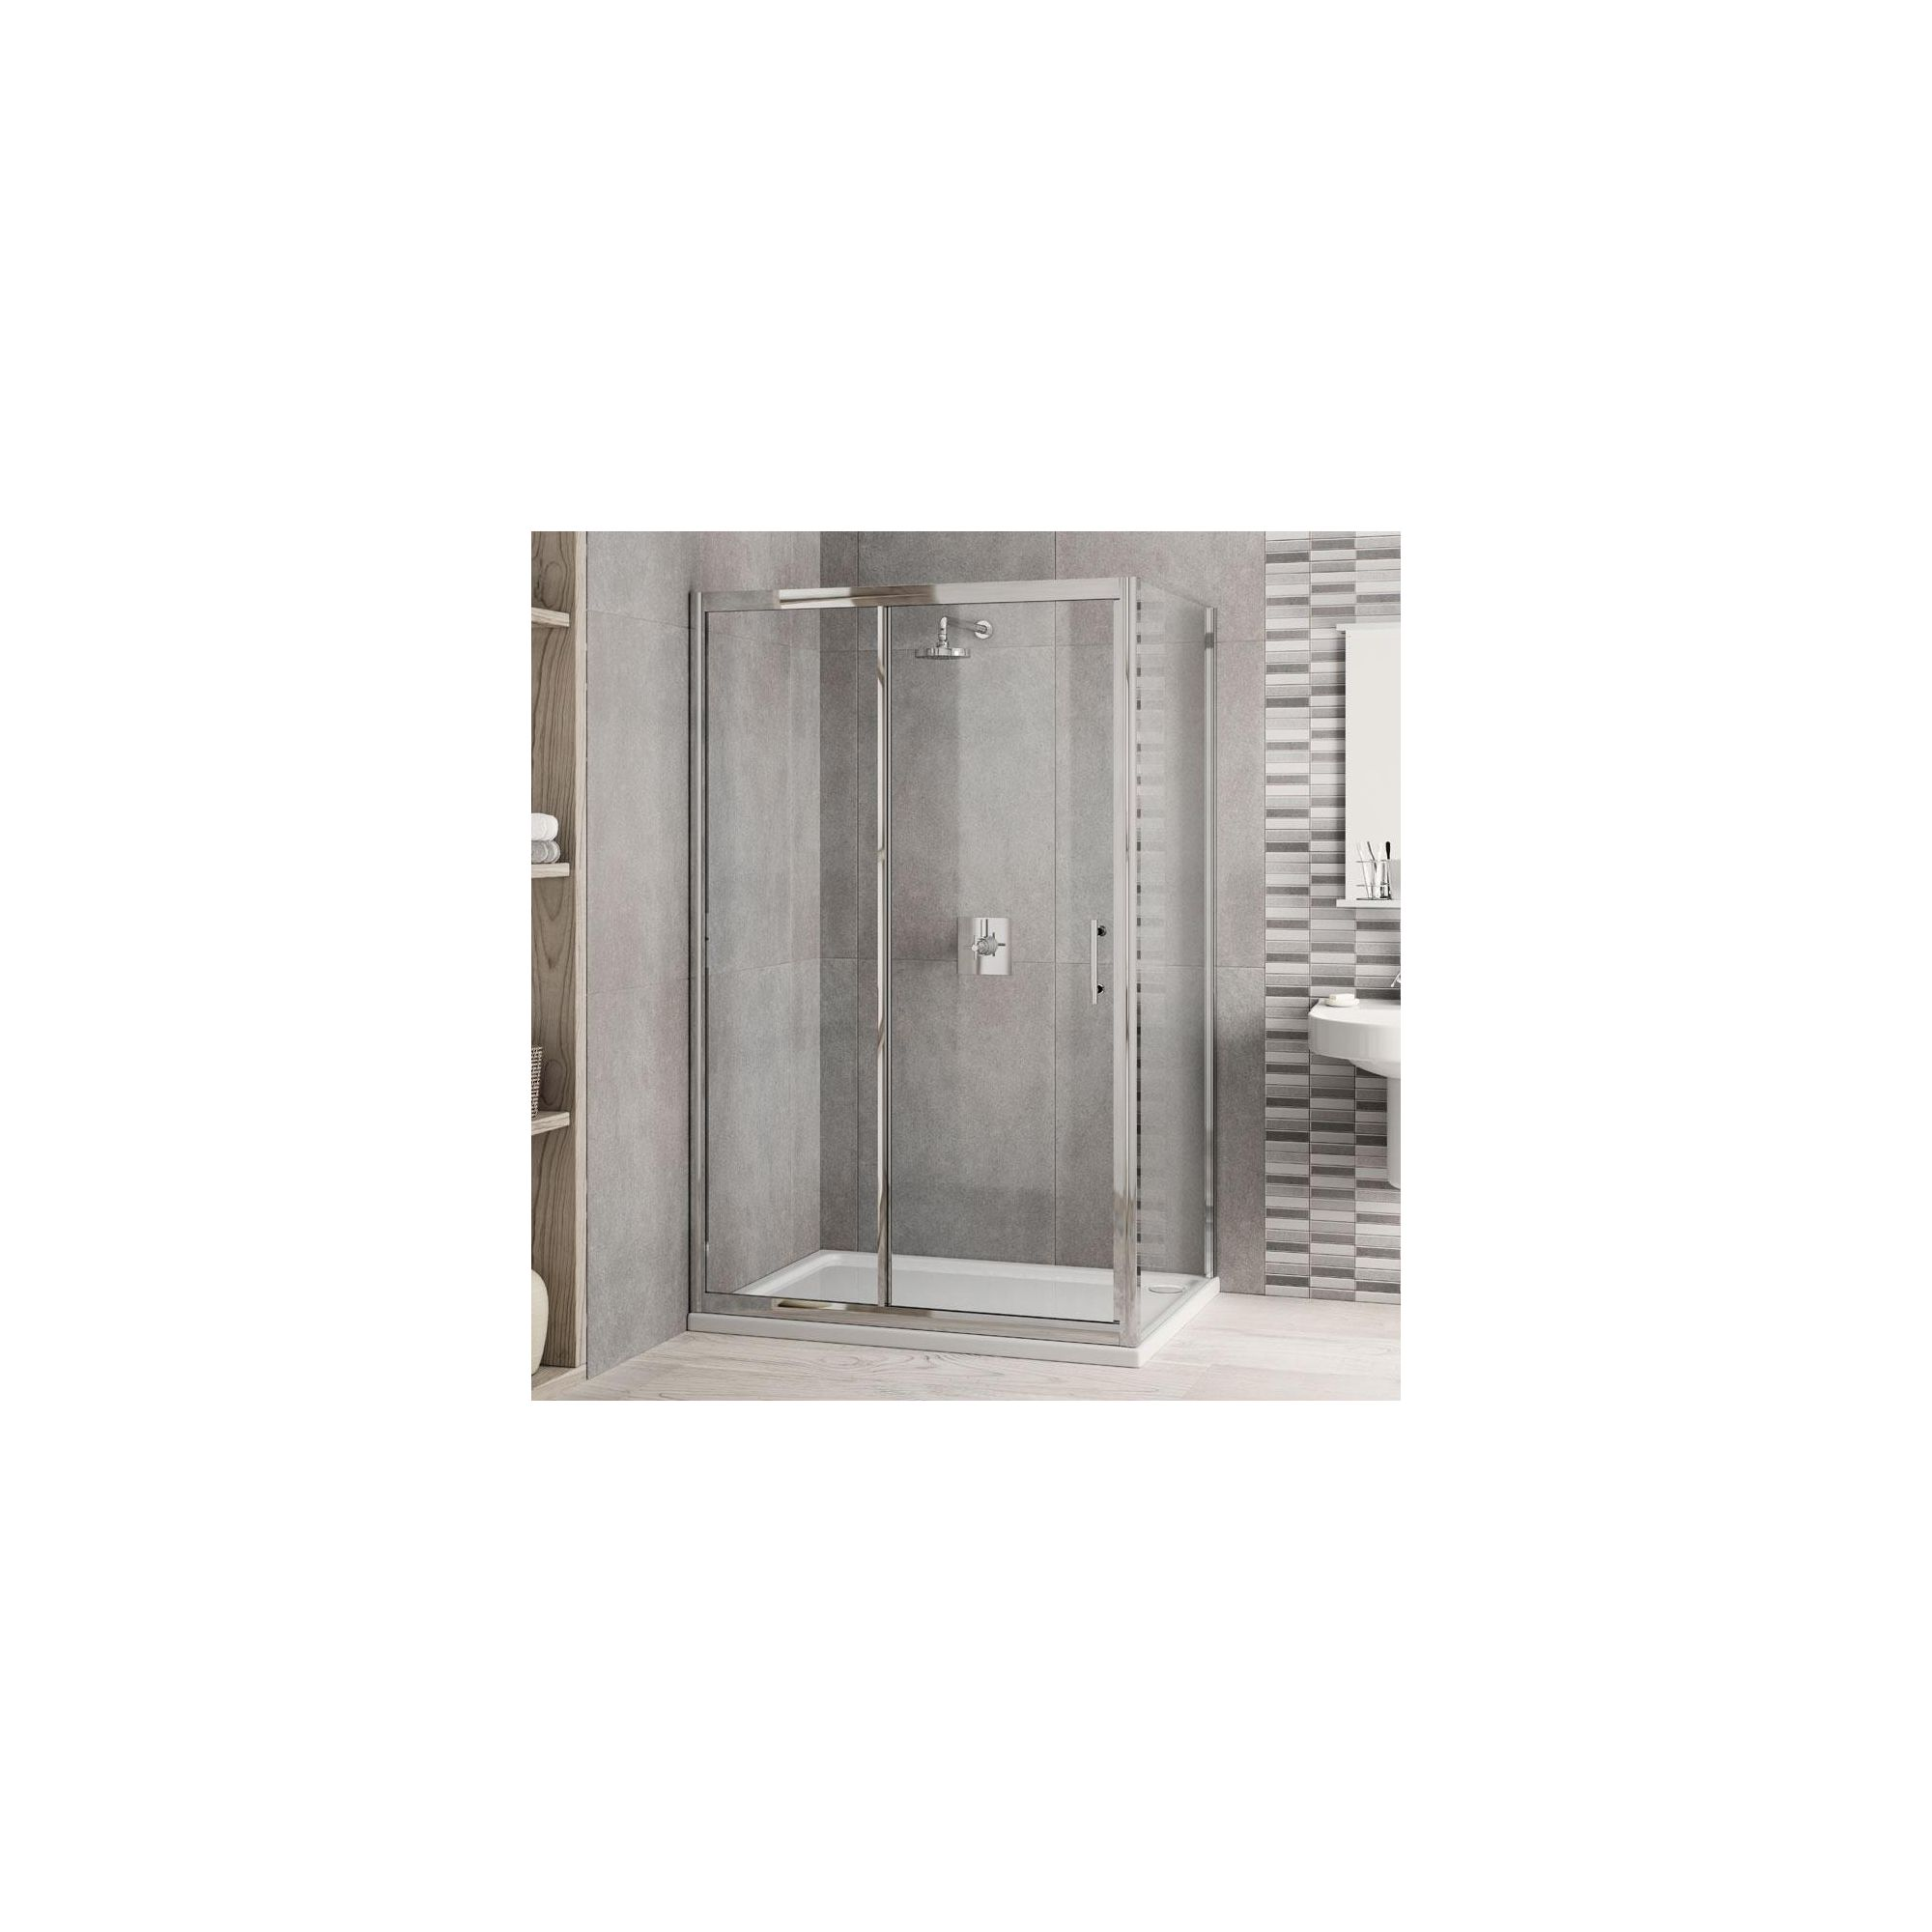 Elemis Inspire Two-Panel Jumbo Sliding Door Shower Enclosure, 1000mm x 800mm, 6mm Glass, Low Profile Tray at Tesco Direct